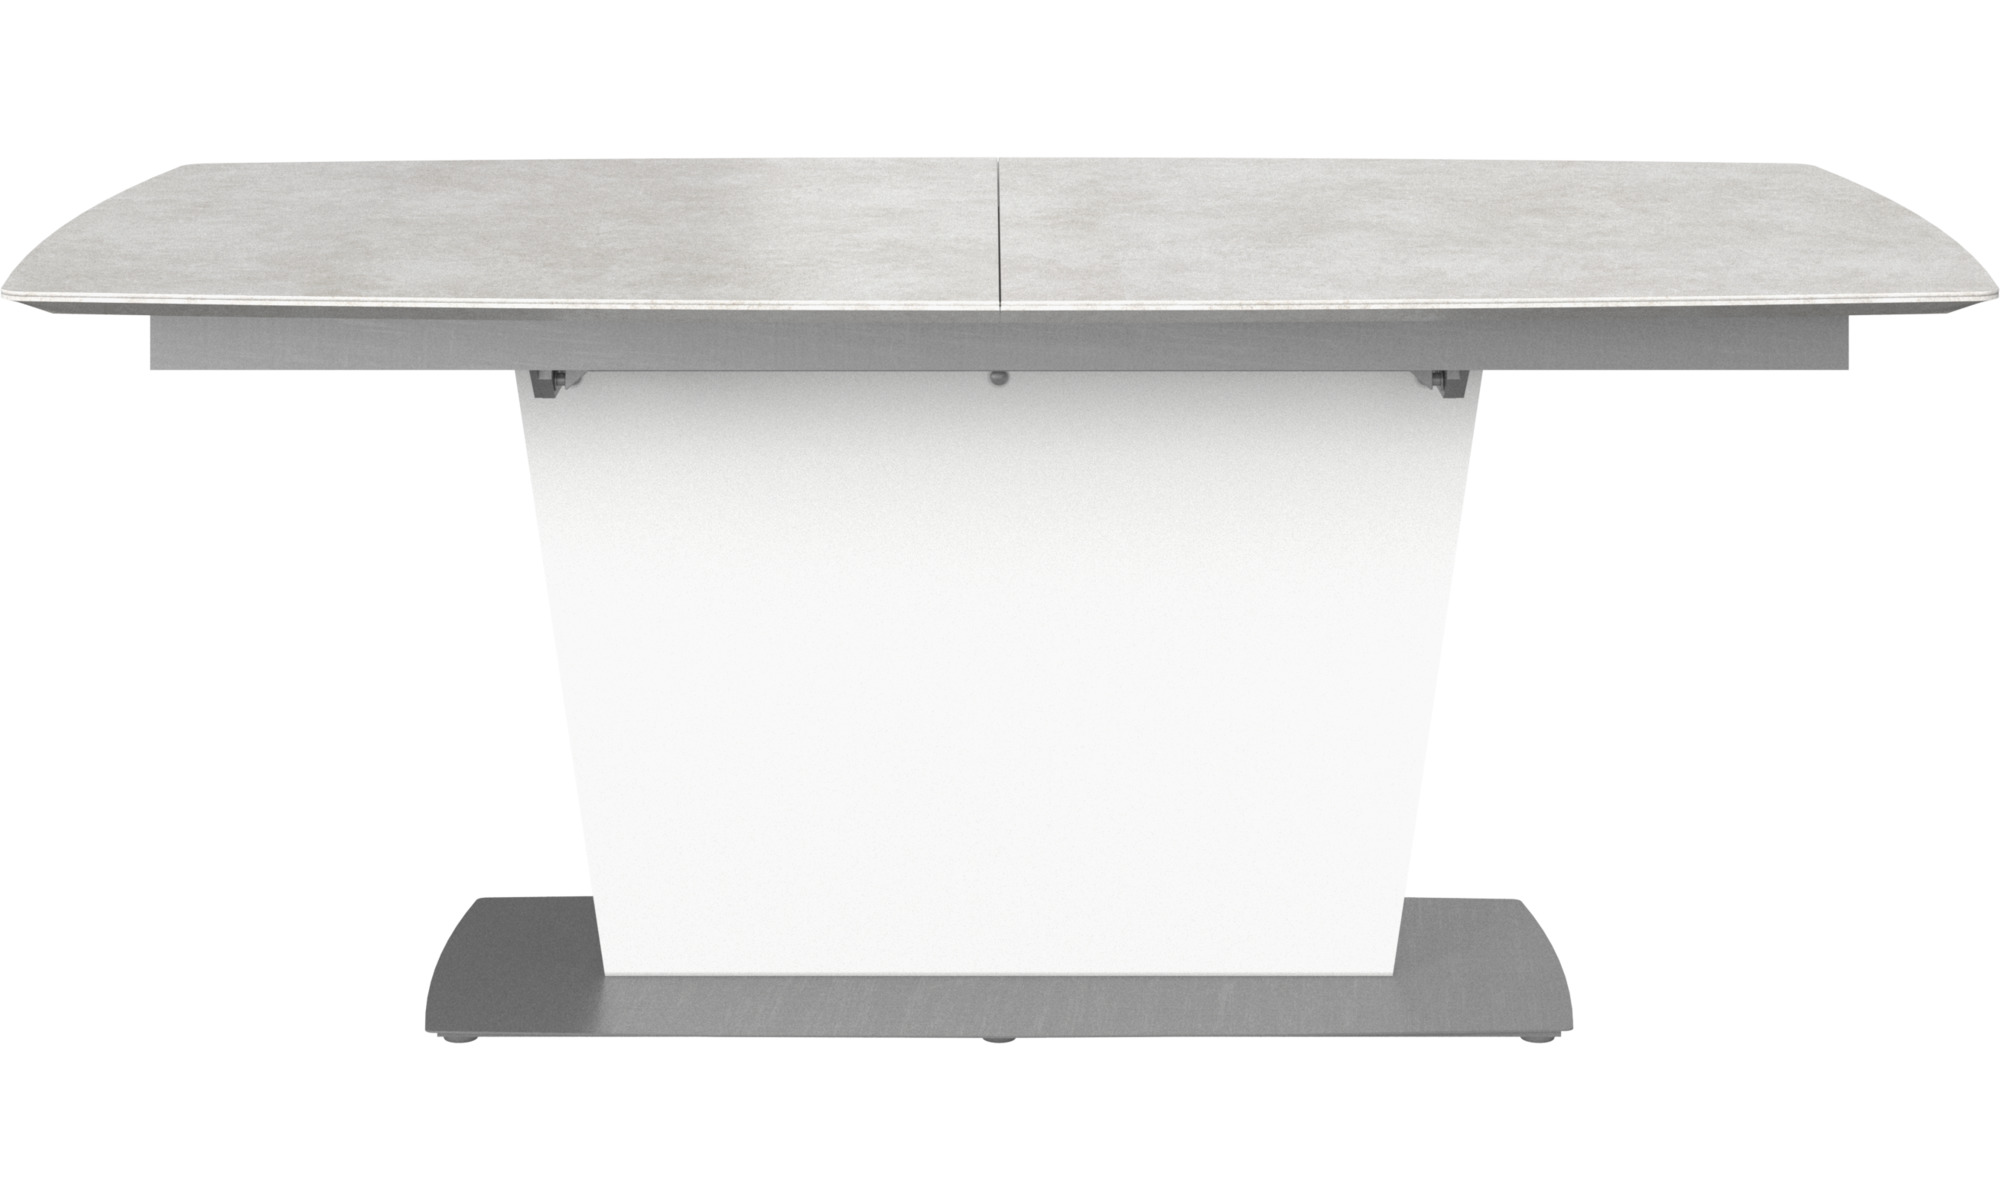 Dining Tables Milano Table With Supplementary Tabletop Rectangular Gray Ceramic